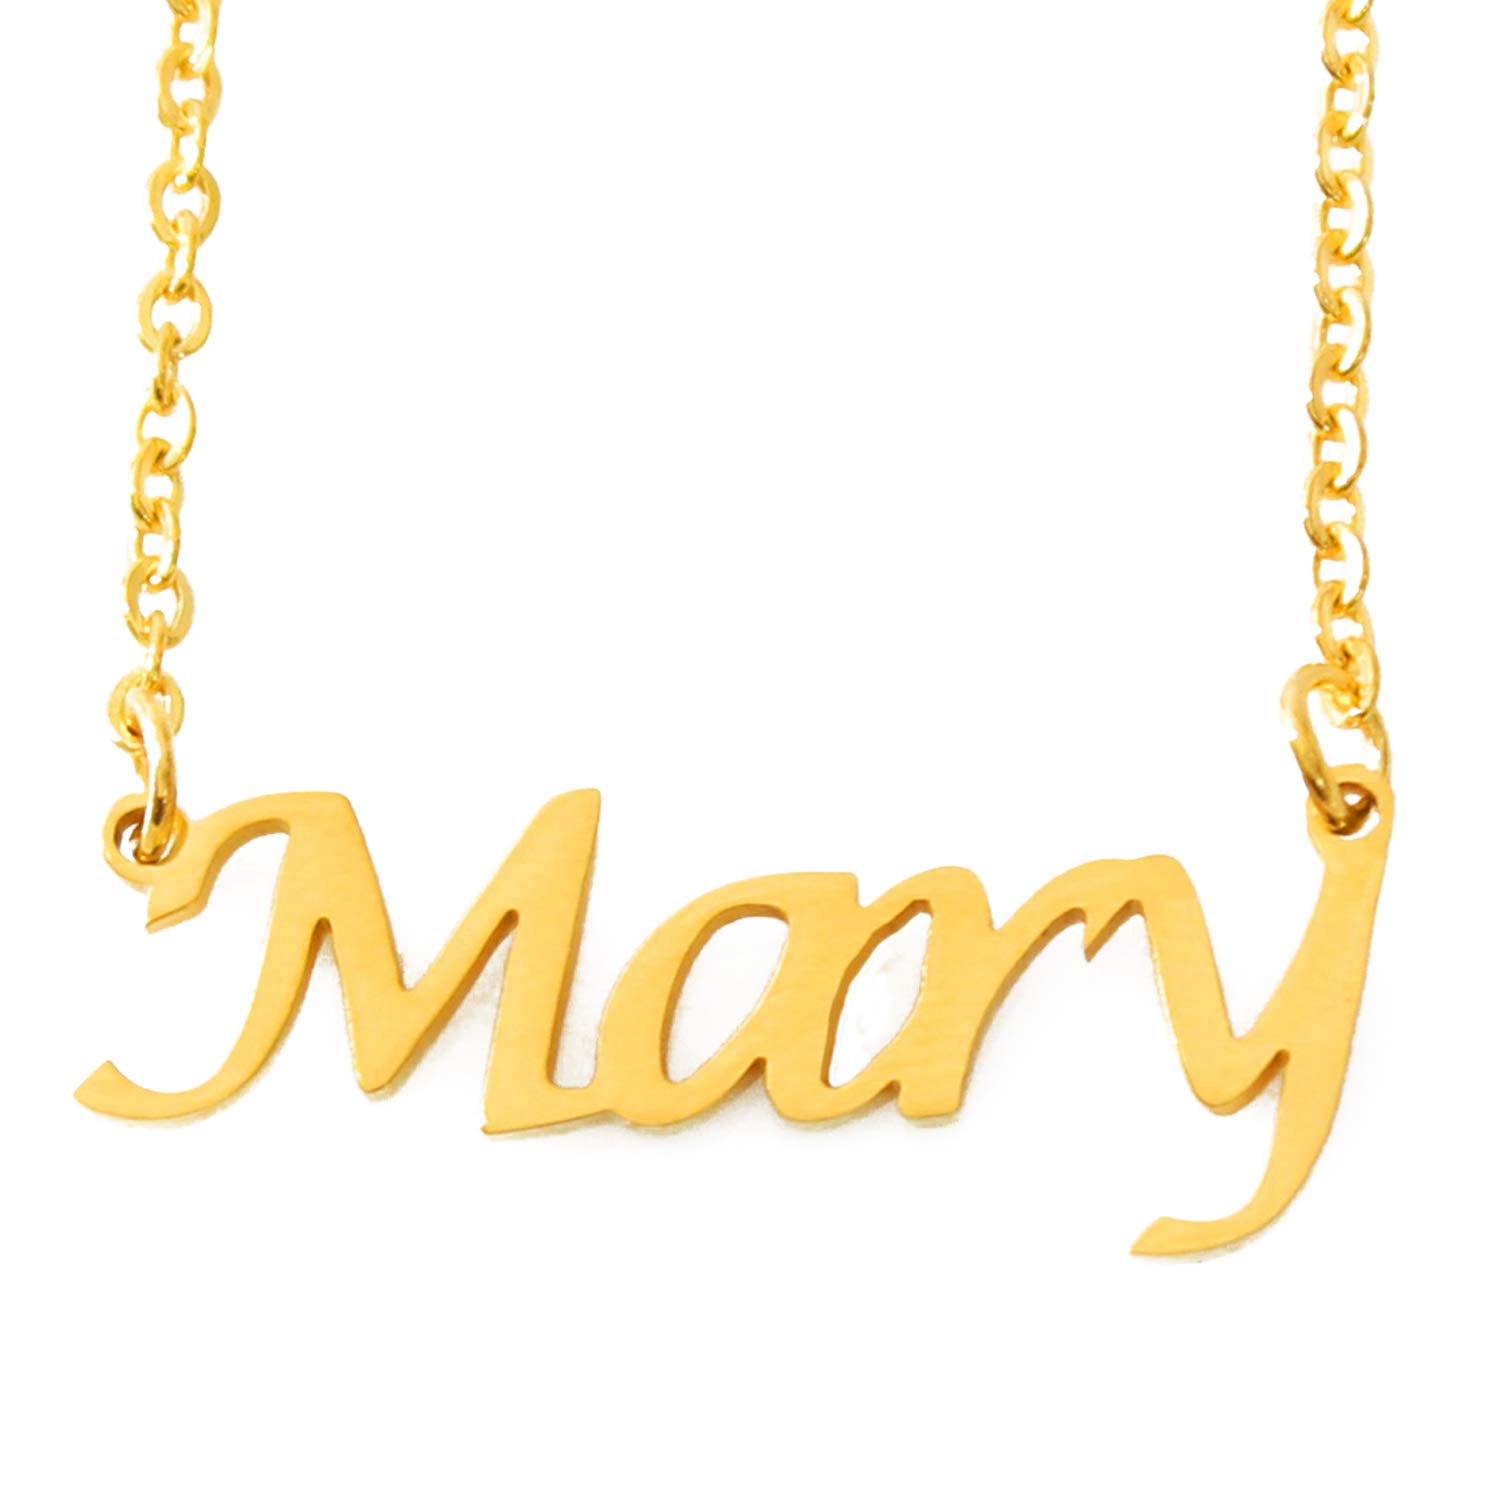 68ec779dfb6d7 Amazon.com: Mary Name Necklace - 18ct Gold Plated: Jewelry